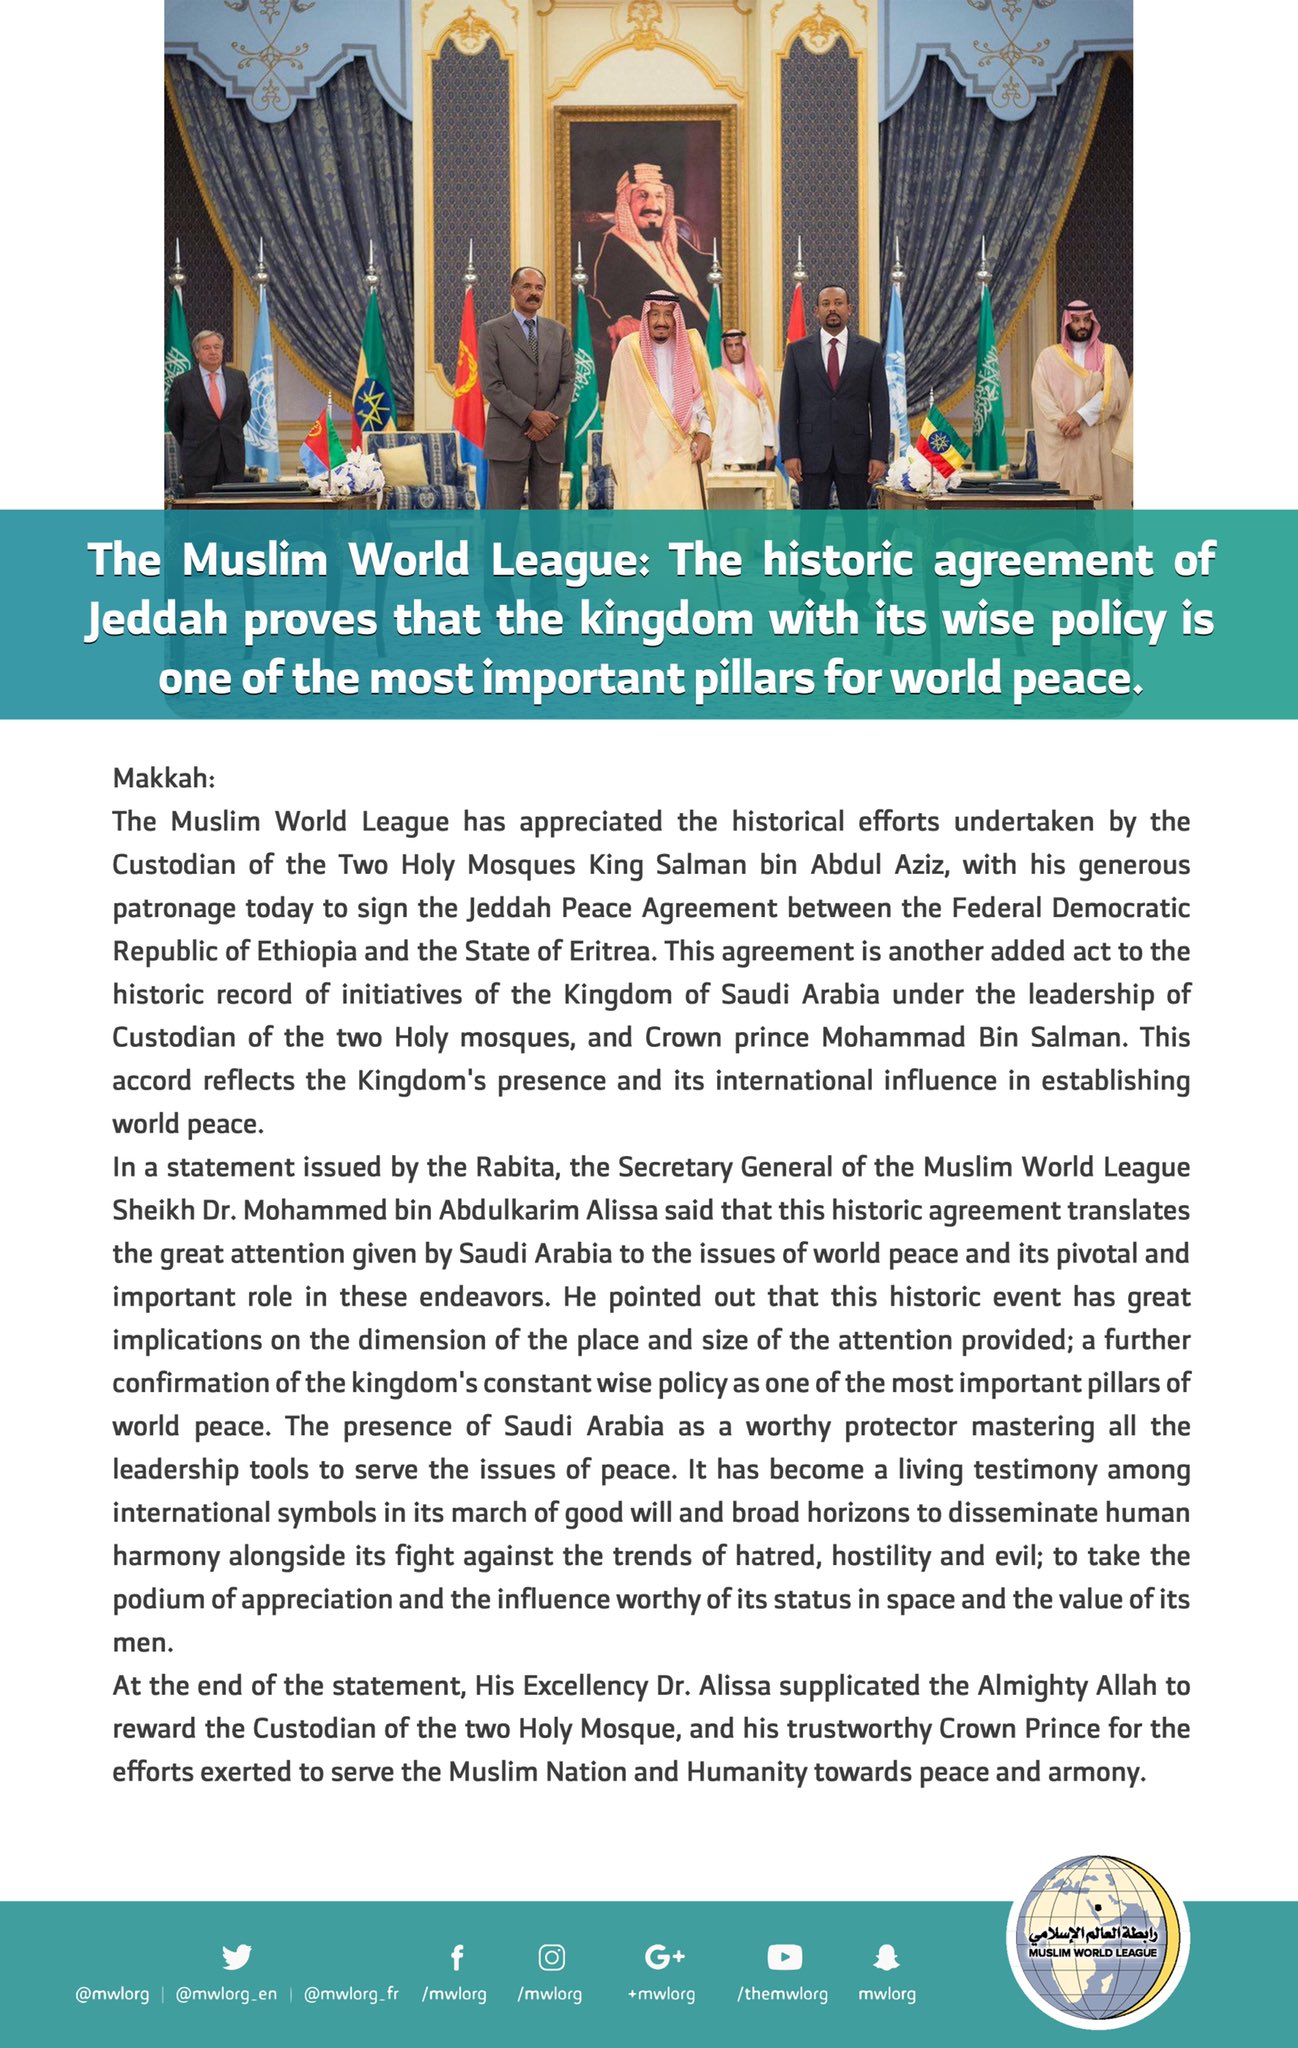 MWL: The Jeddah historic agreement proves that the kingdom with its wise policy is one of the most important pillars for world peace